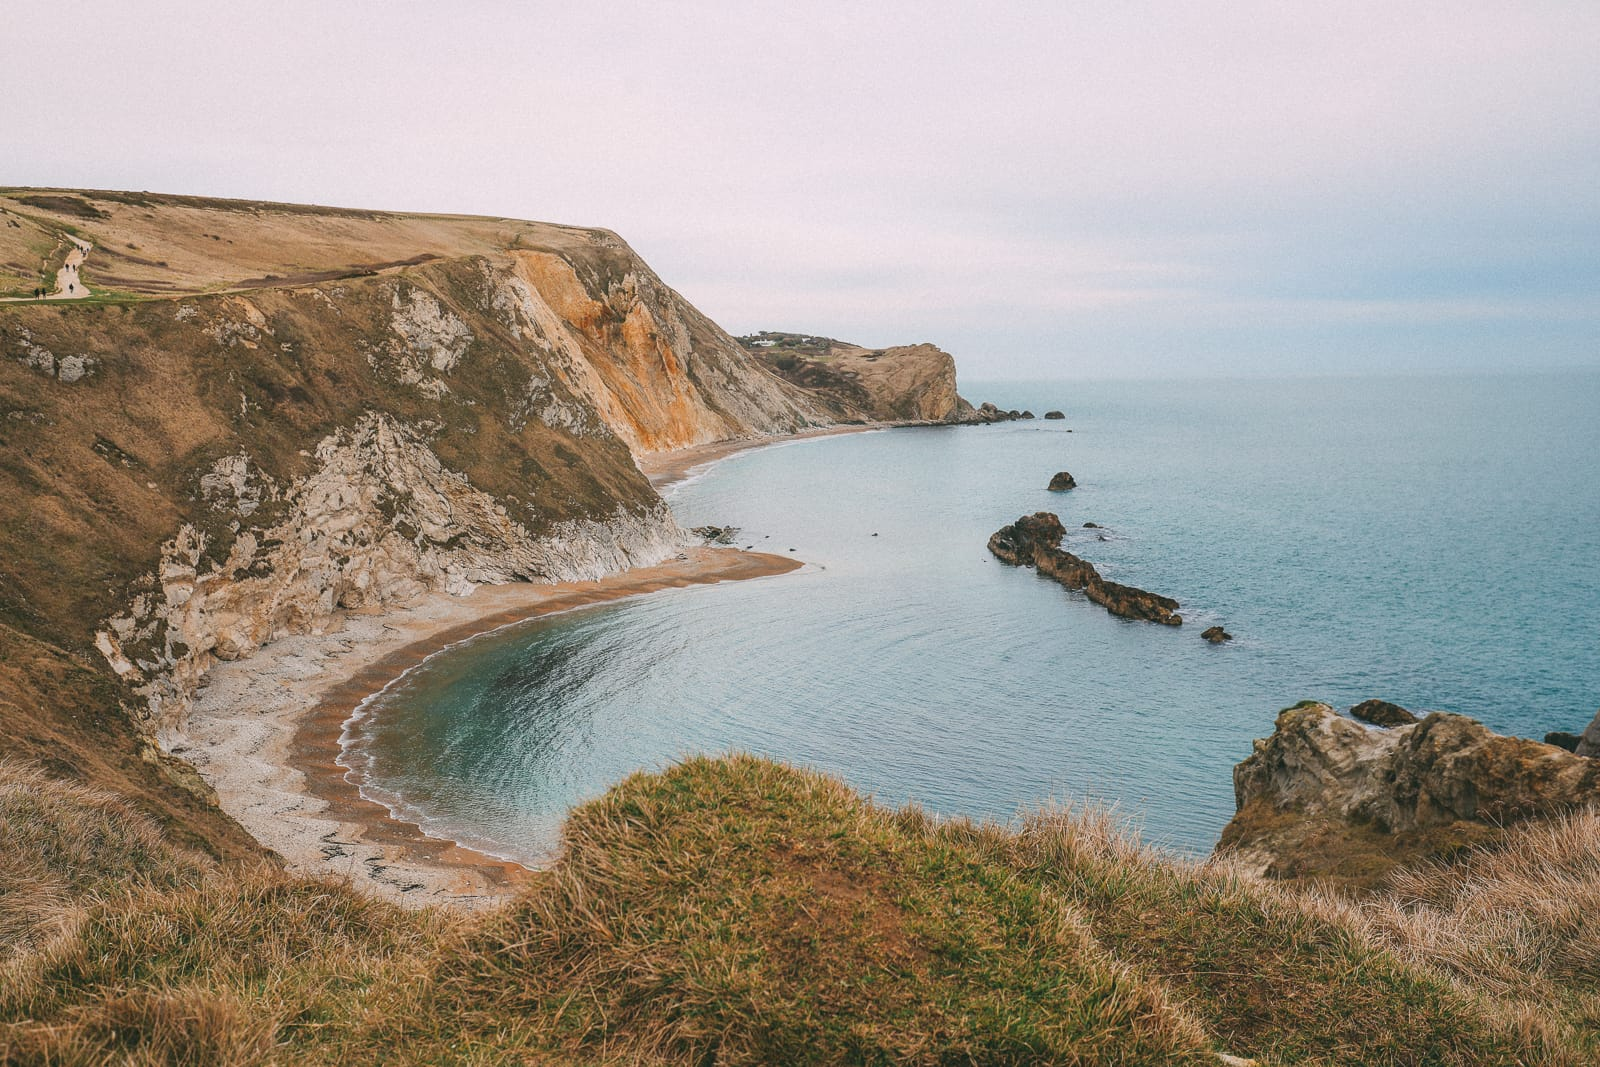 The Amazing 8,000 Year Old English Village And Durdle Door In The Jurassic Coast Of England (36)